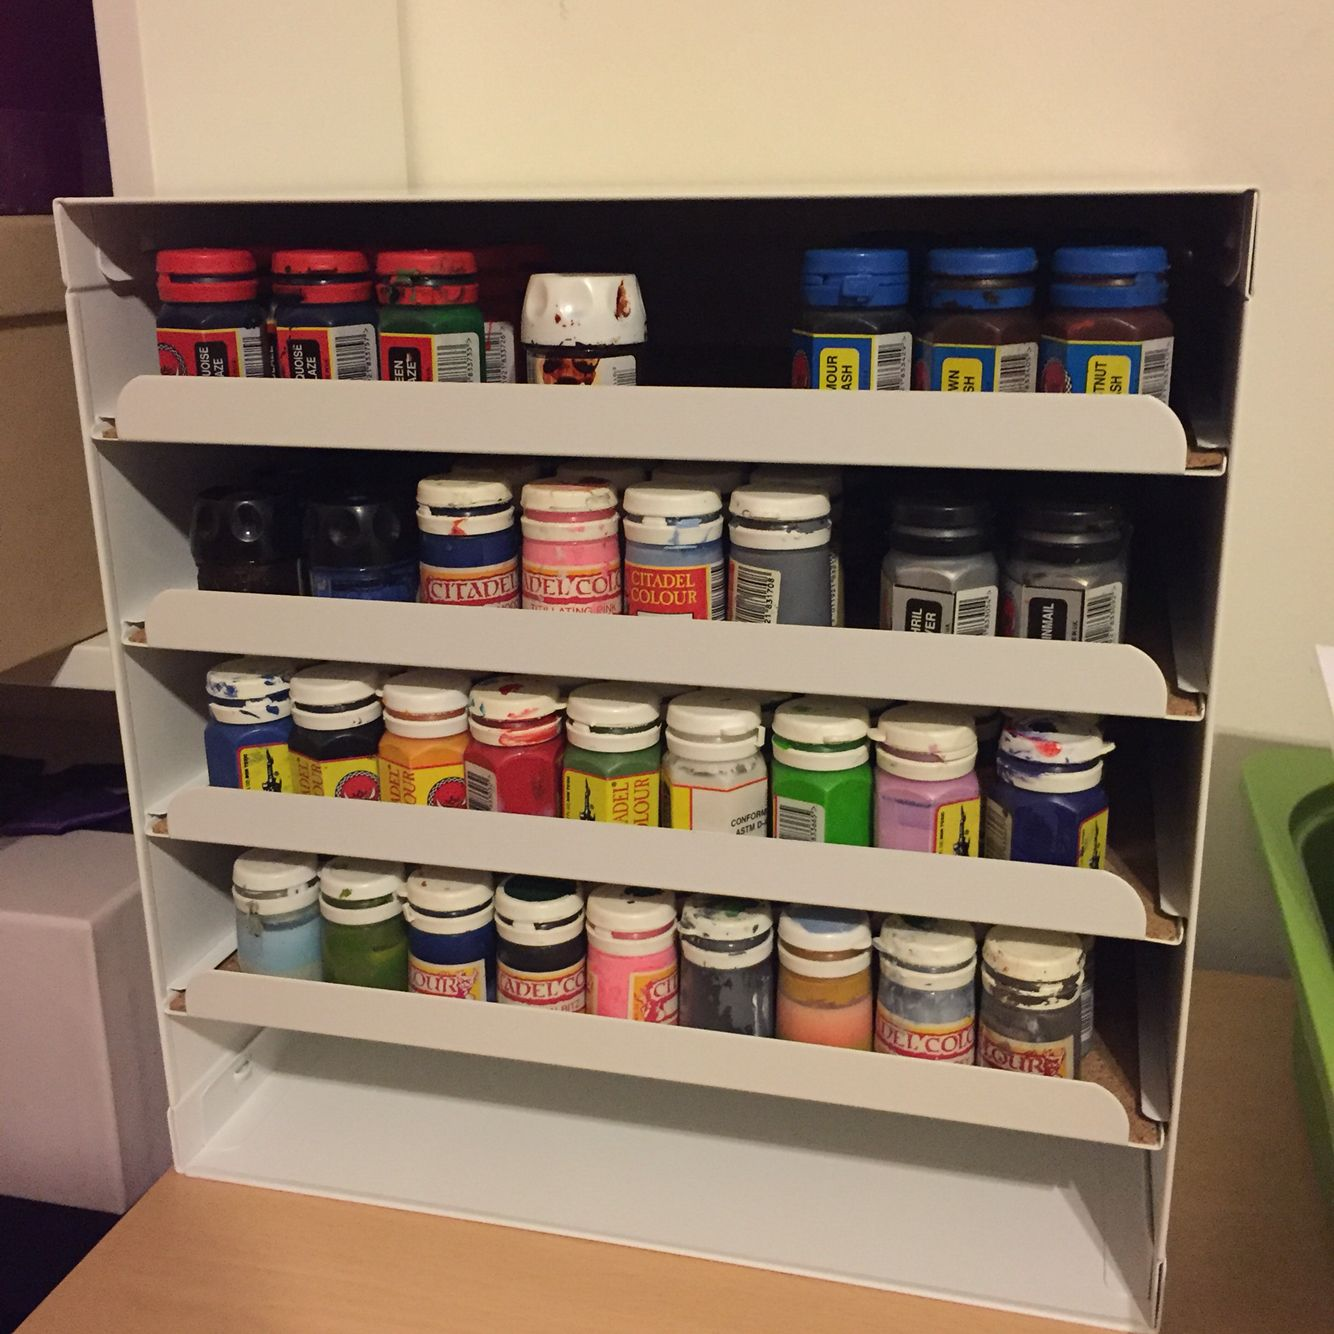 Games workshop colorado - Using The Ikea Kvissle Letter Tray To Store Games Workshop Paints